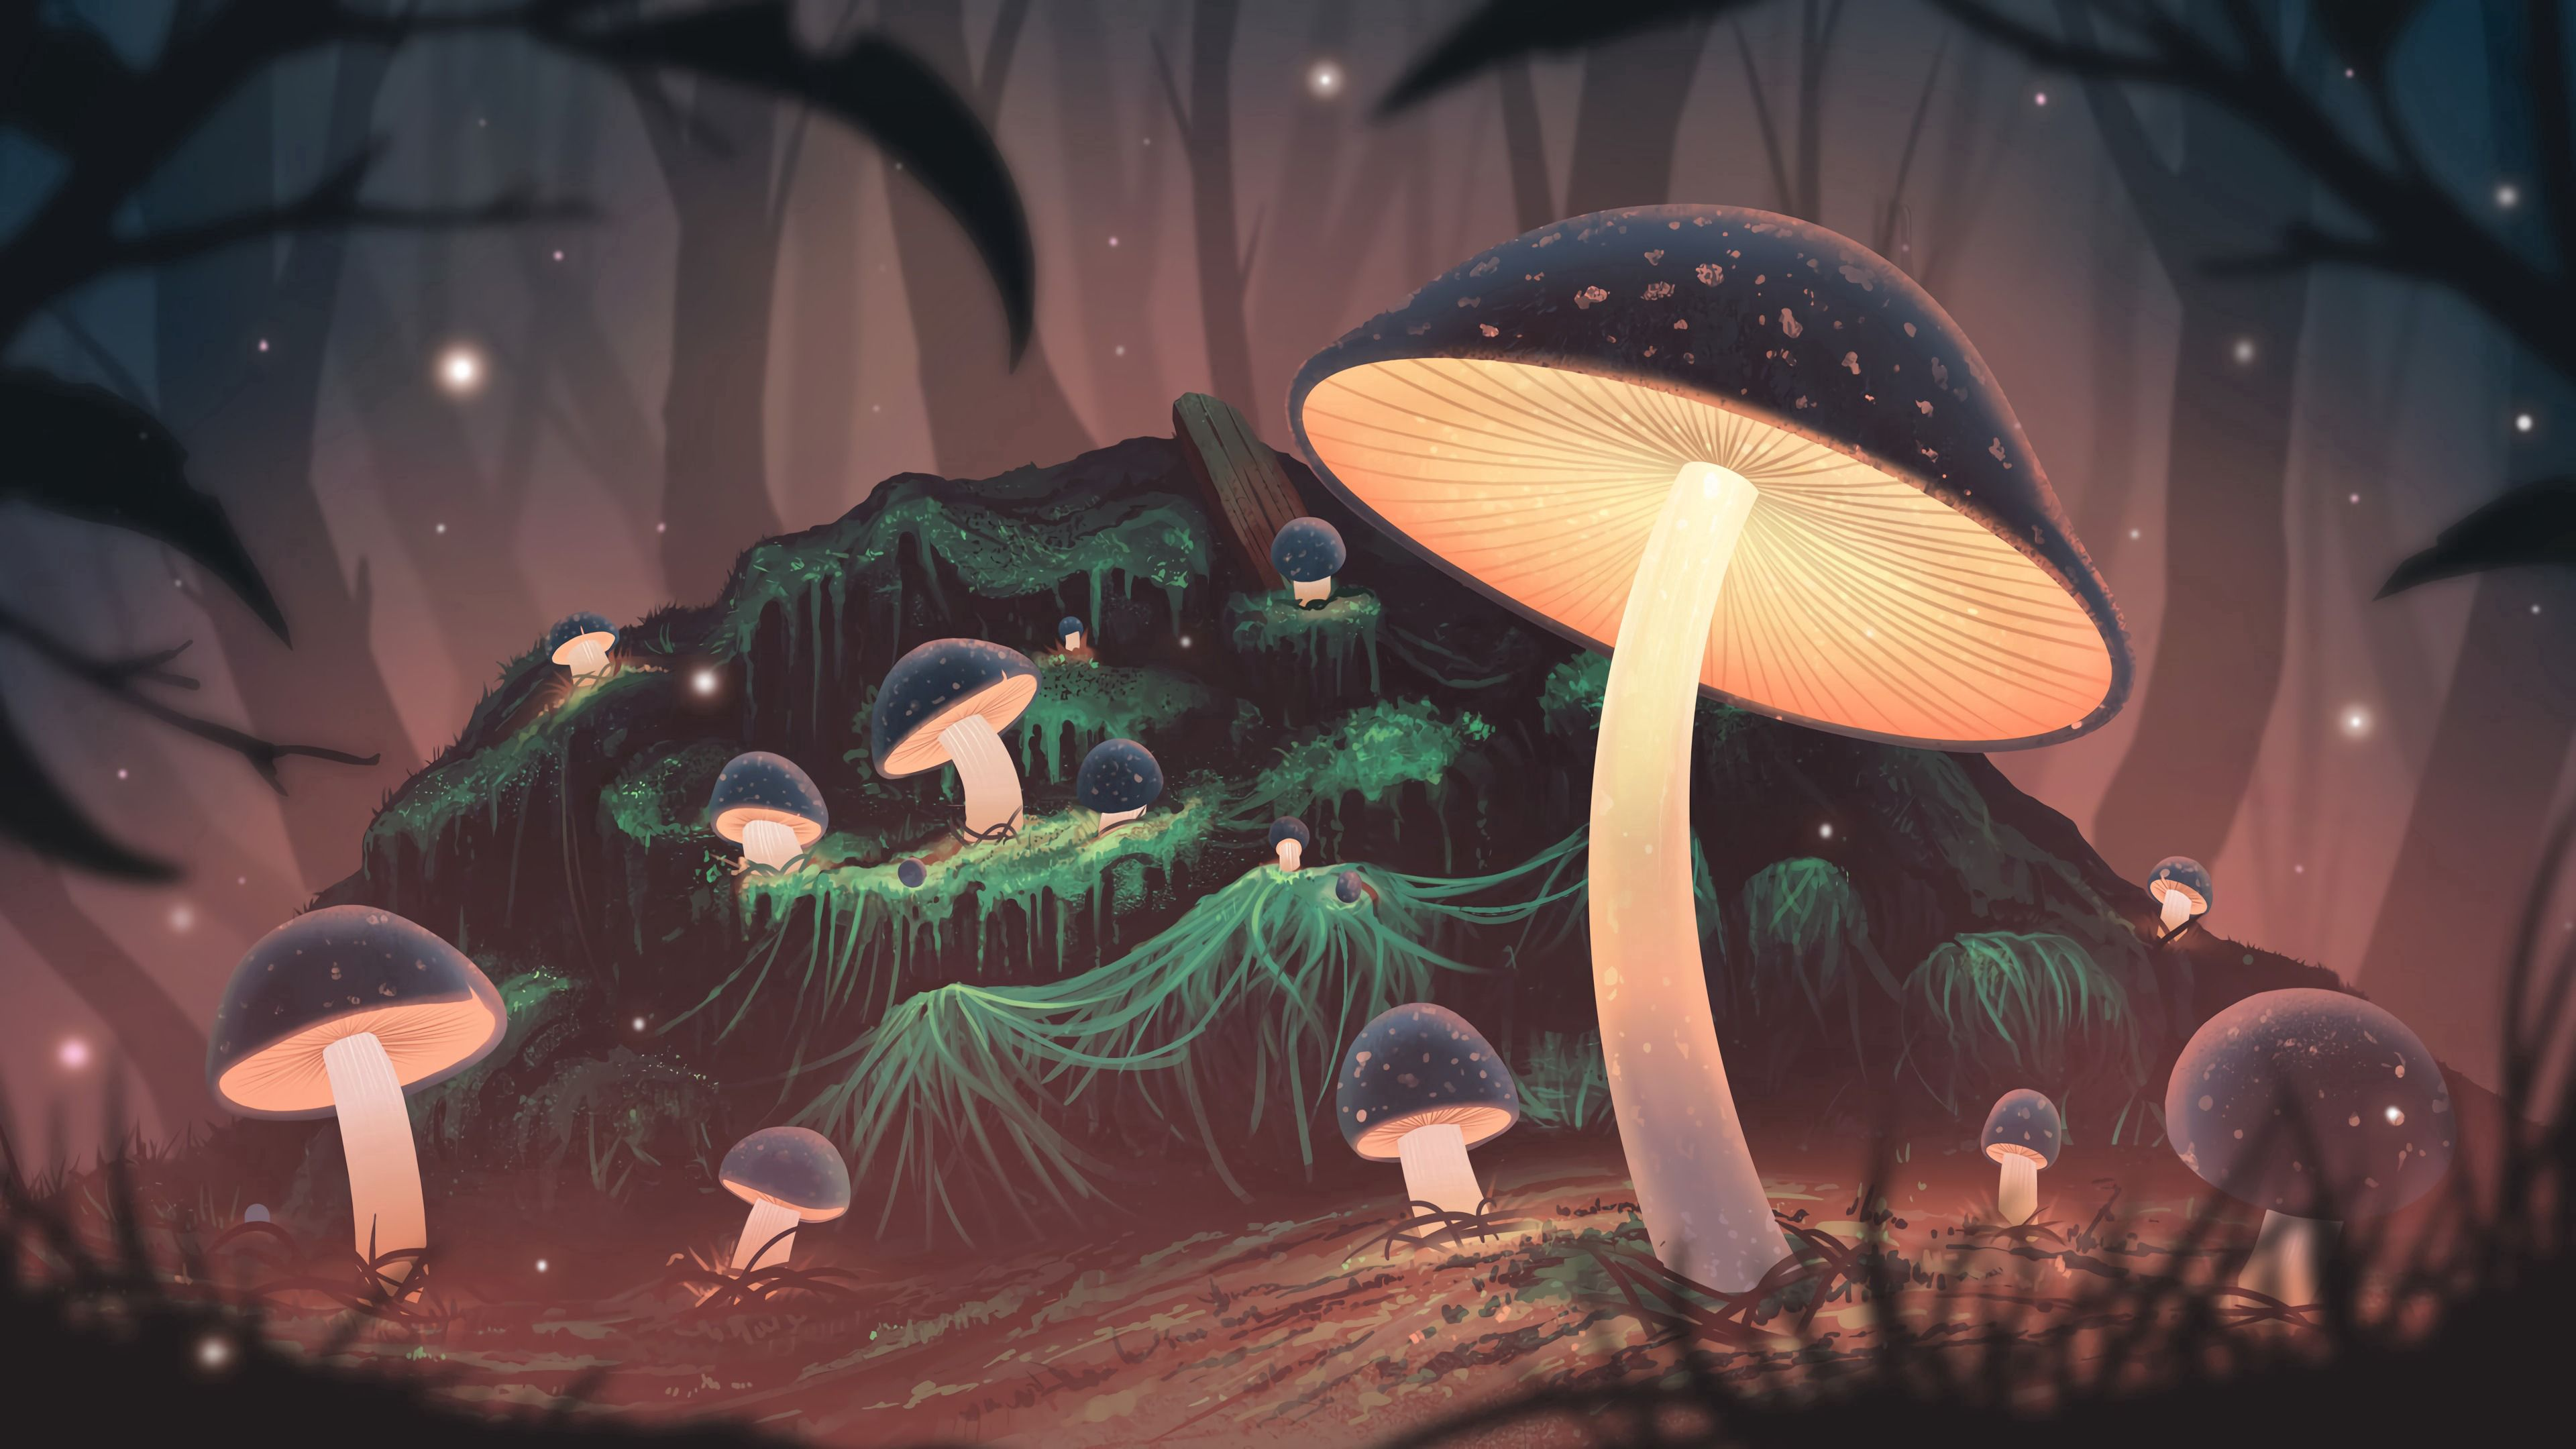 157849 download wallpaper Art, Mashrooms, Shine, Light, Forest, Glow screensavers and pictures for free